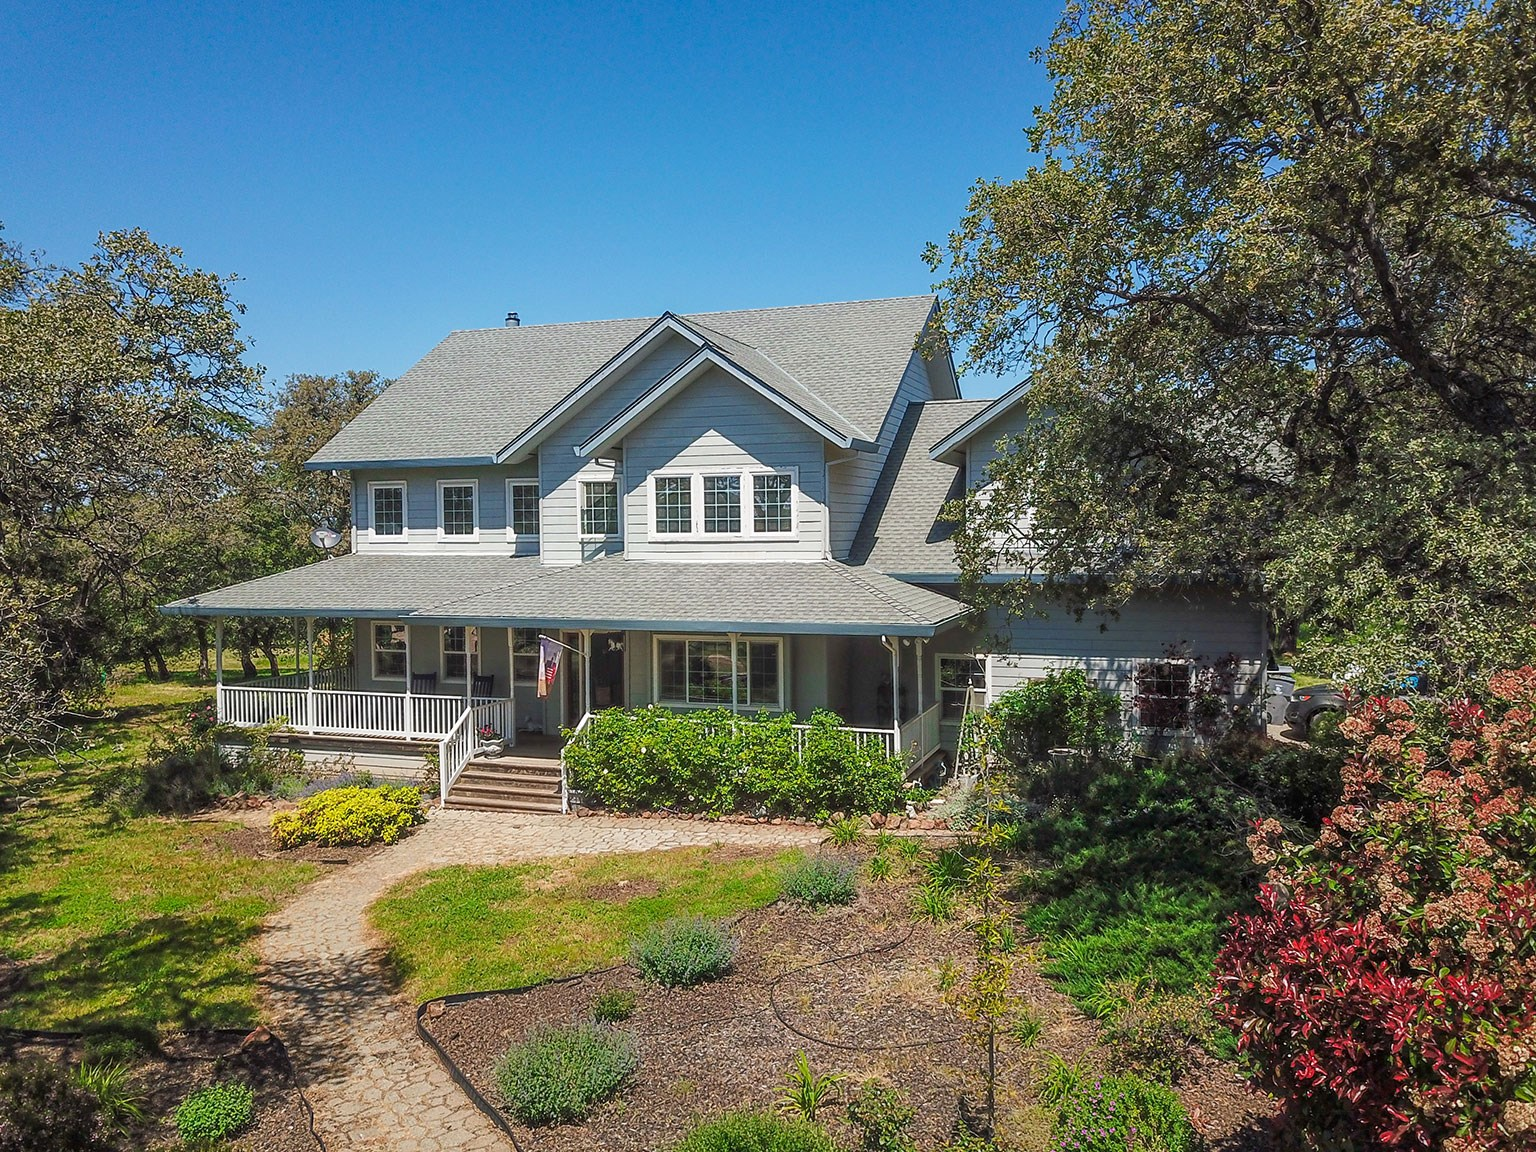 42 Acre Exceptional Horse Ranch